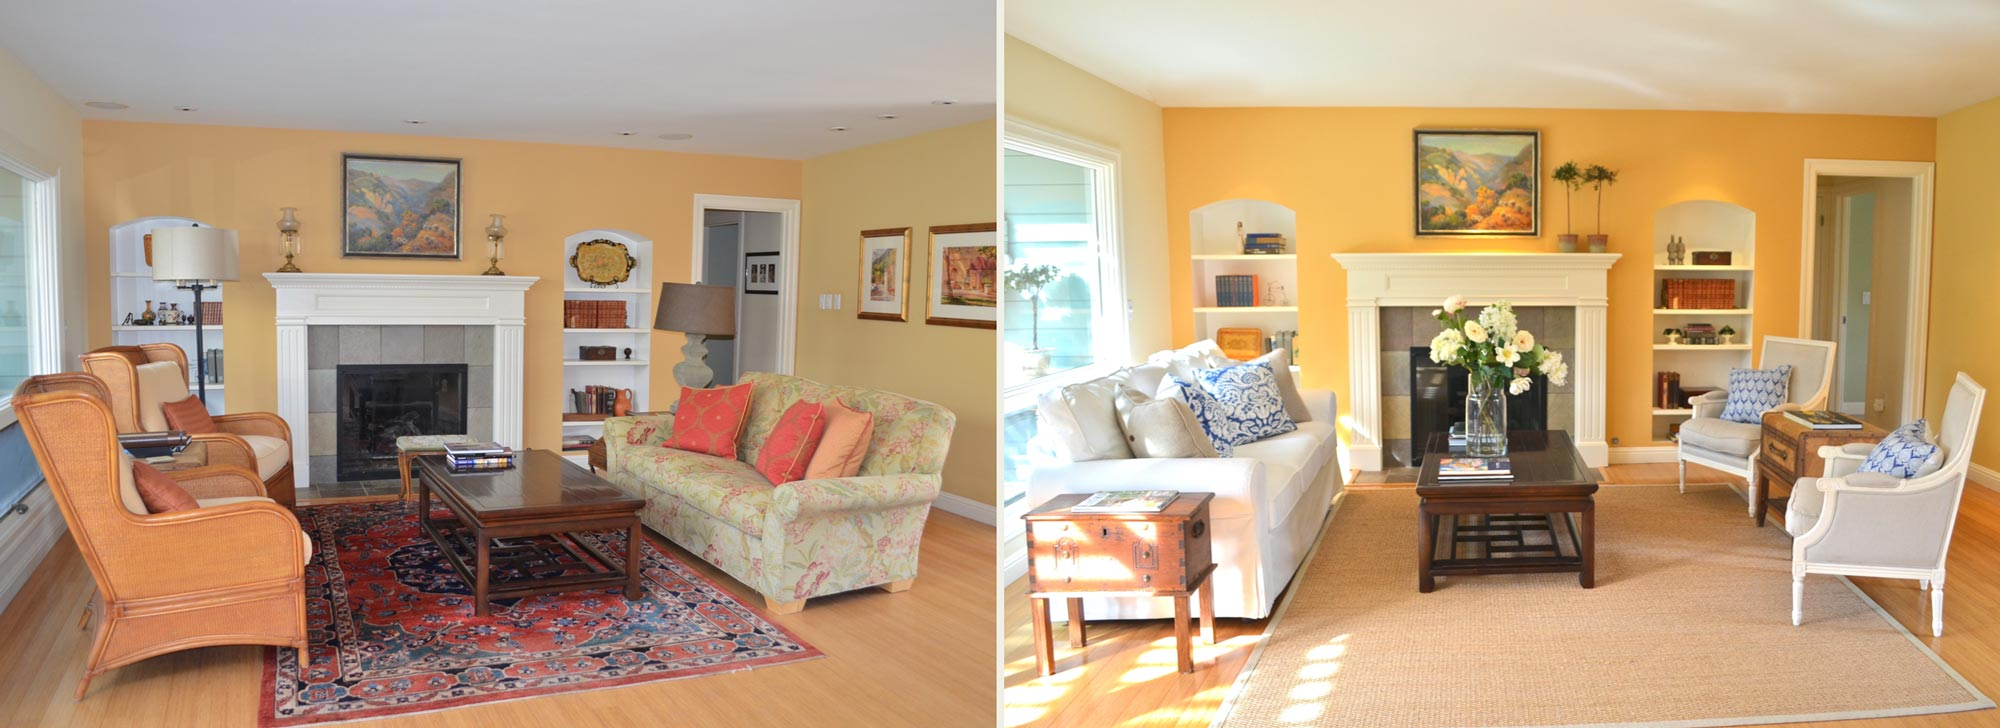 cary-nowell-staging-before-after-23.jpg